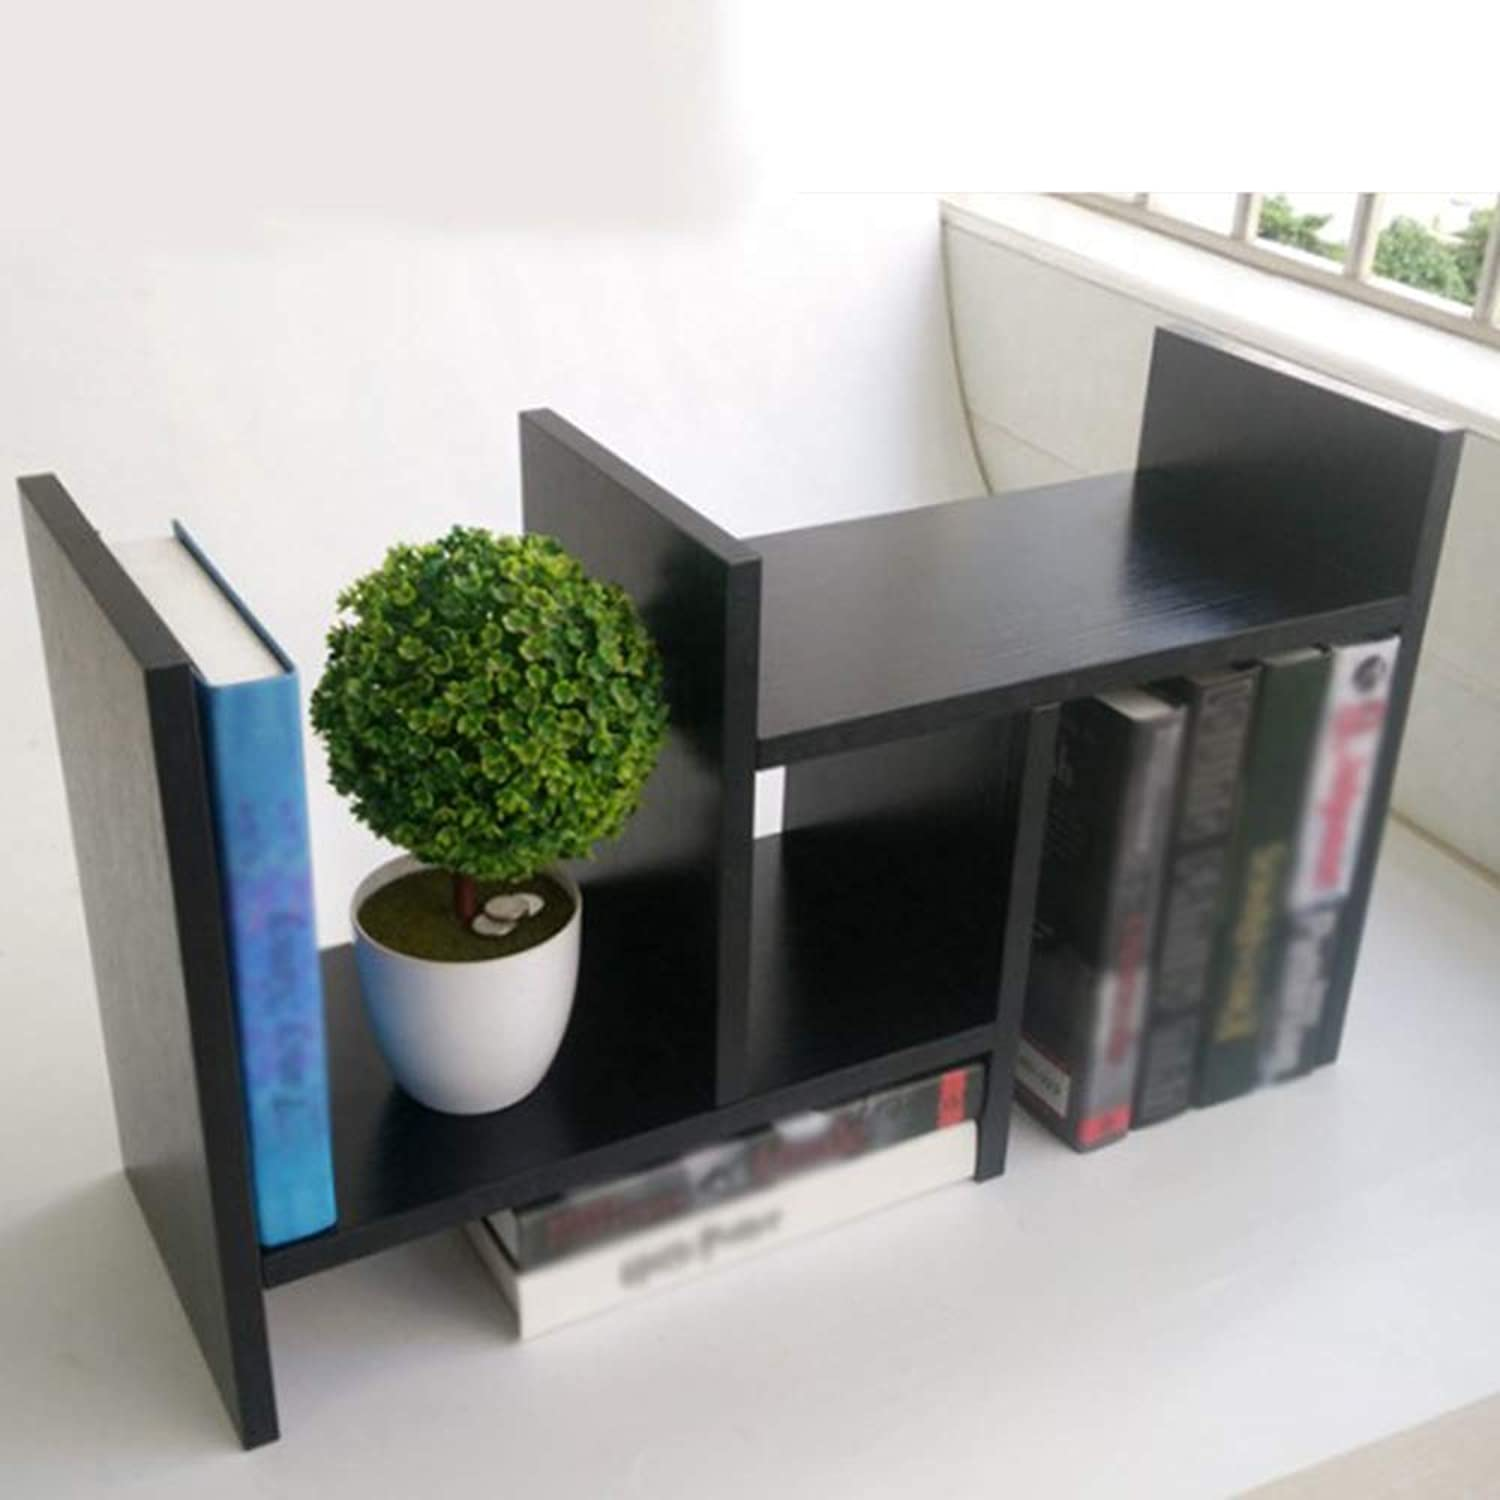 Bookcase,Wooden Adjustable Small Bookshelf Storage Rack Desktop Bookshelf Shelf White, Black, Wood color,Black